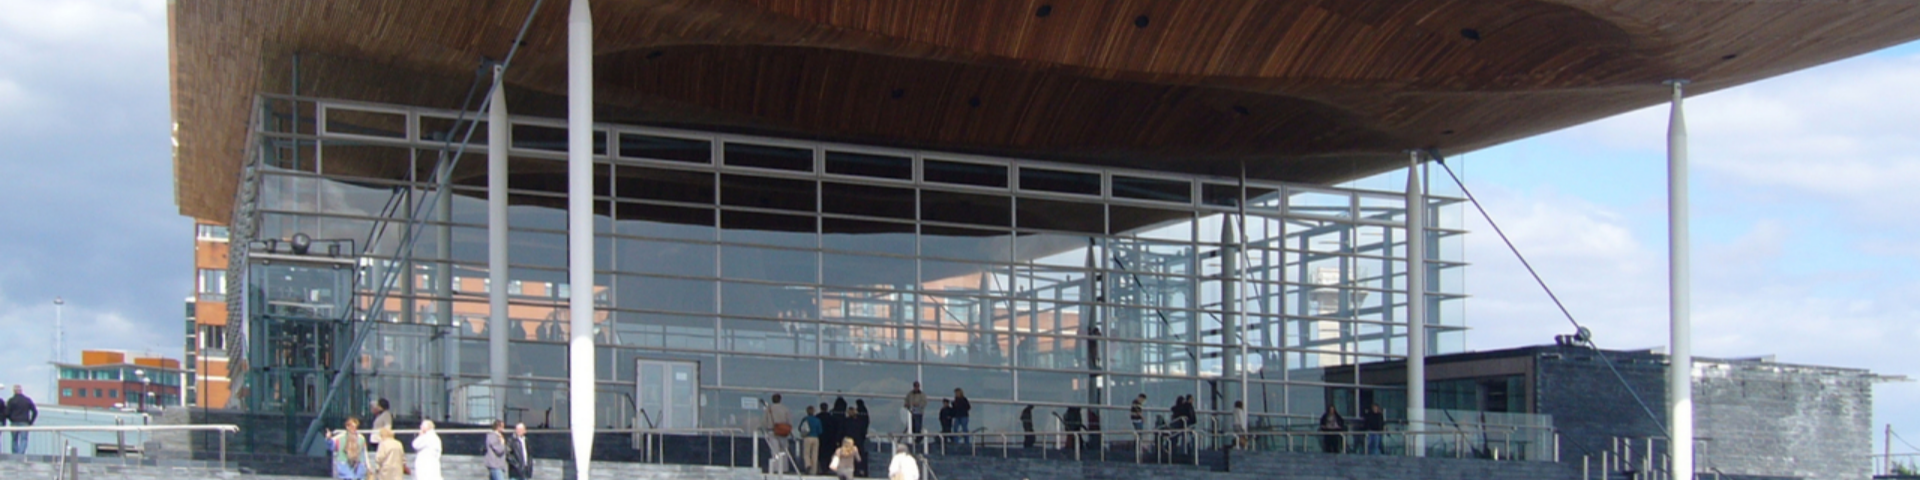 People walk up the steps to the Senedd on a clear blue day.